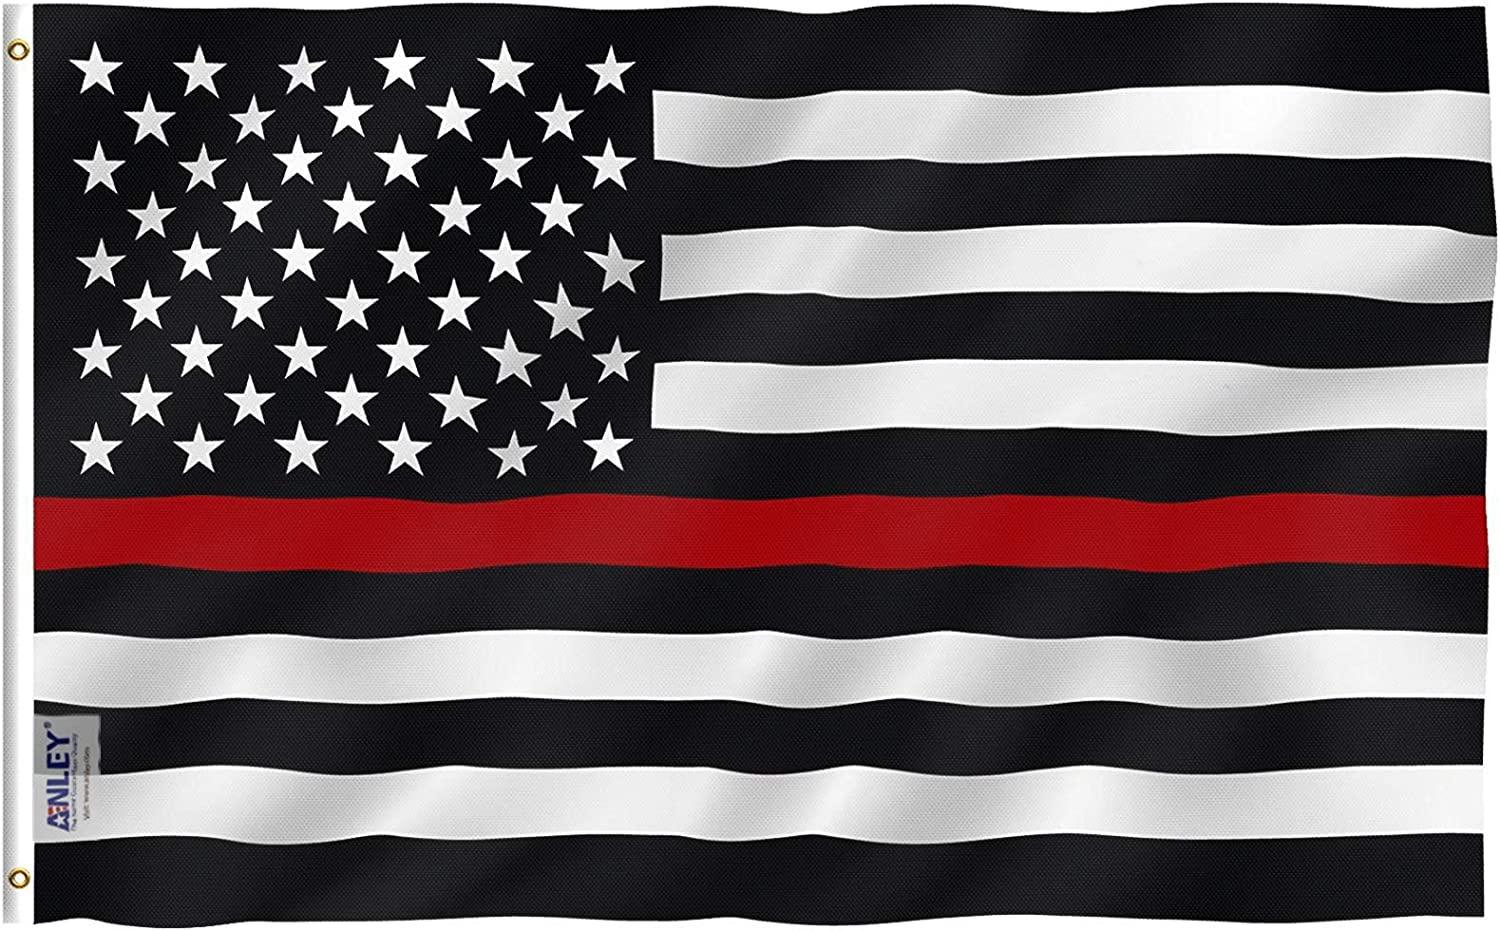 Anley Fly Breeze 3x5 Foot Thin Red Line USA Polyester Flag - Vivid Color and UV Fade Resistant - Canvas Header and Double Stitched - American Honoring Firefighter Flags with Brass Grommets 3 X 5 Ft